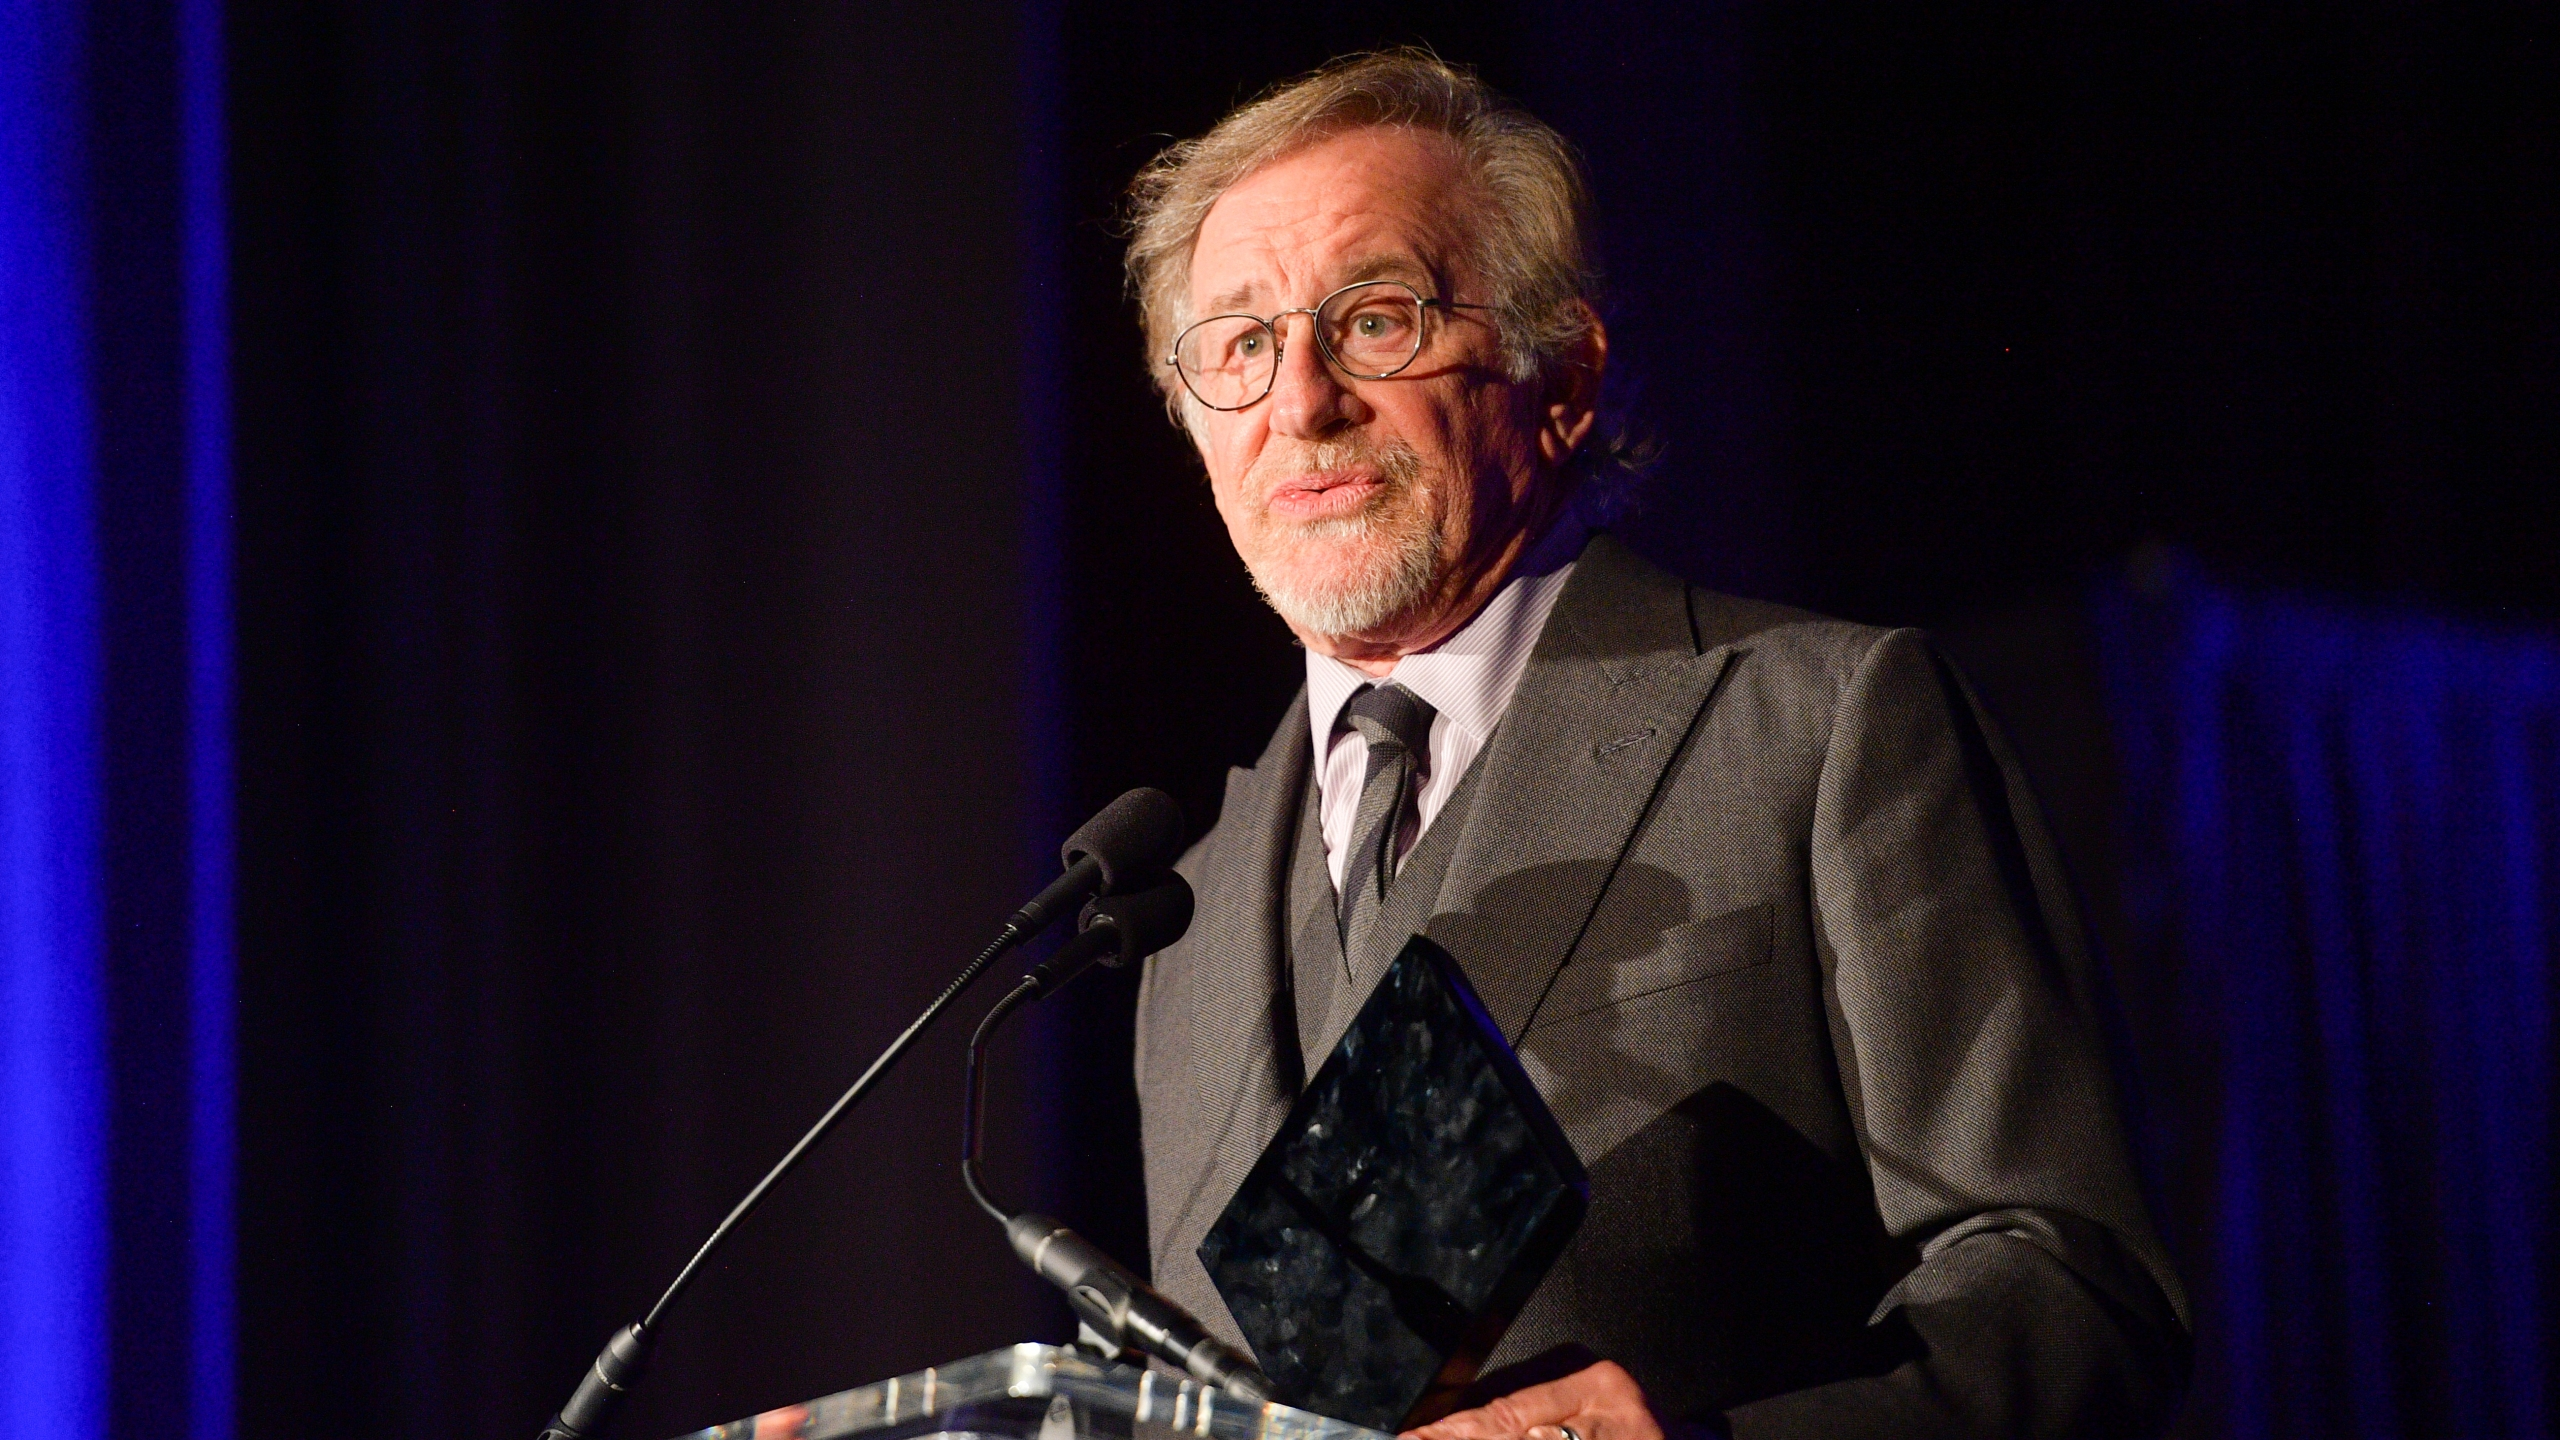 Steven Spielberg attends the 55th Annual Cinema Audio Society Awards at InterContinental Los Angeles Downtown on February 16, 2019 in Los Angeles, California. (Credit: Matt Winkelmeyer/Getty Images)